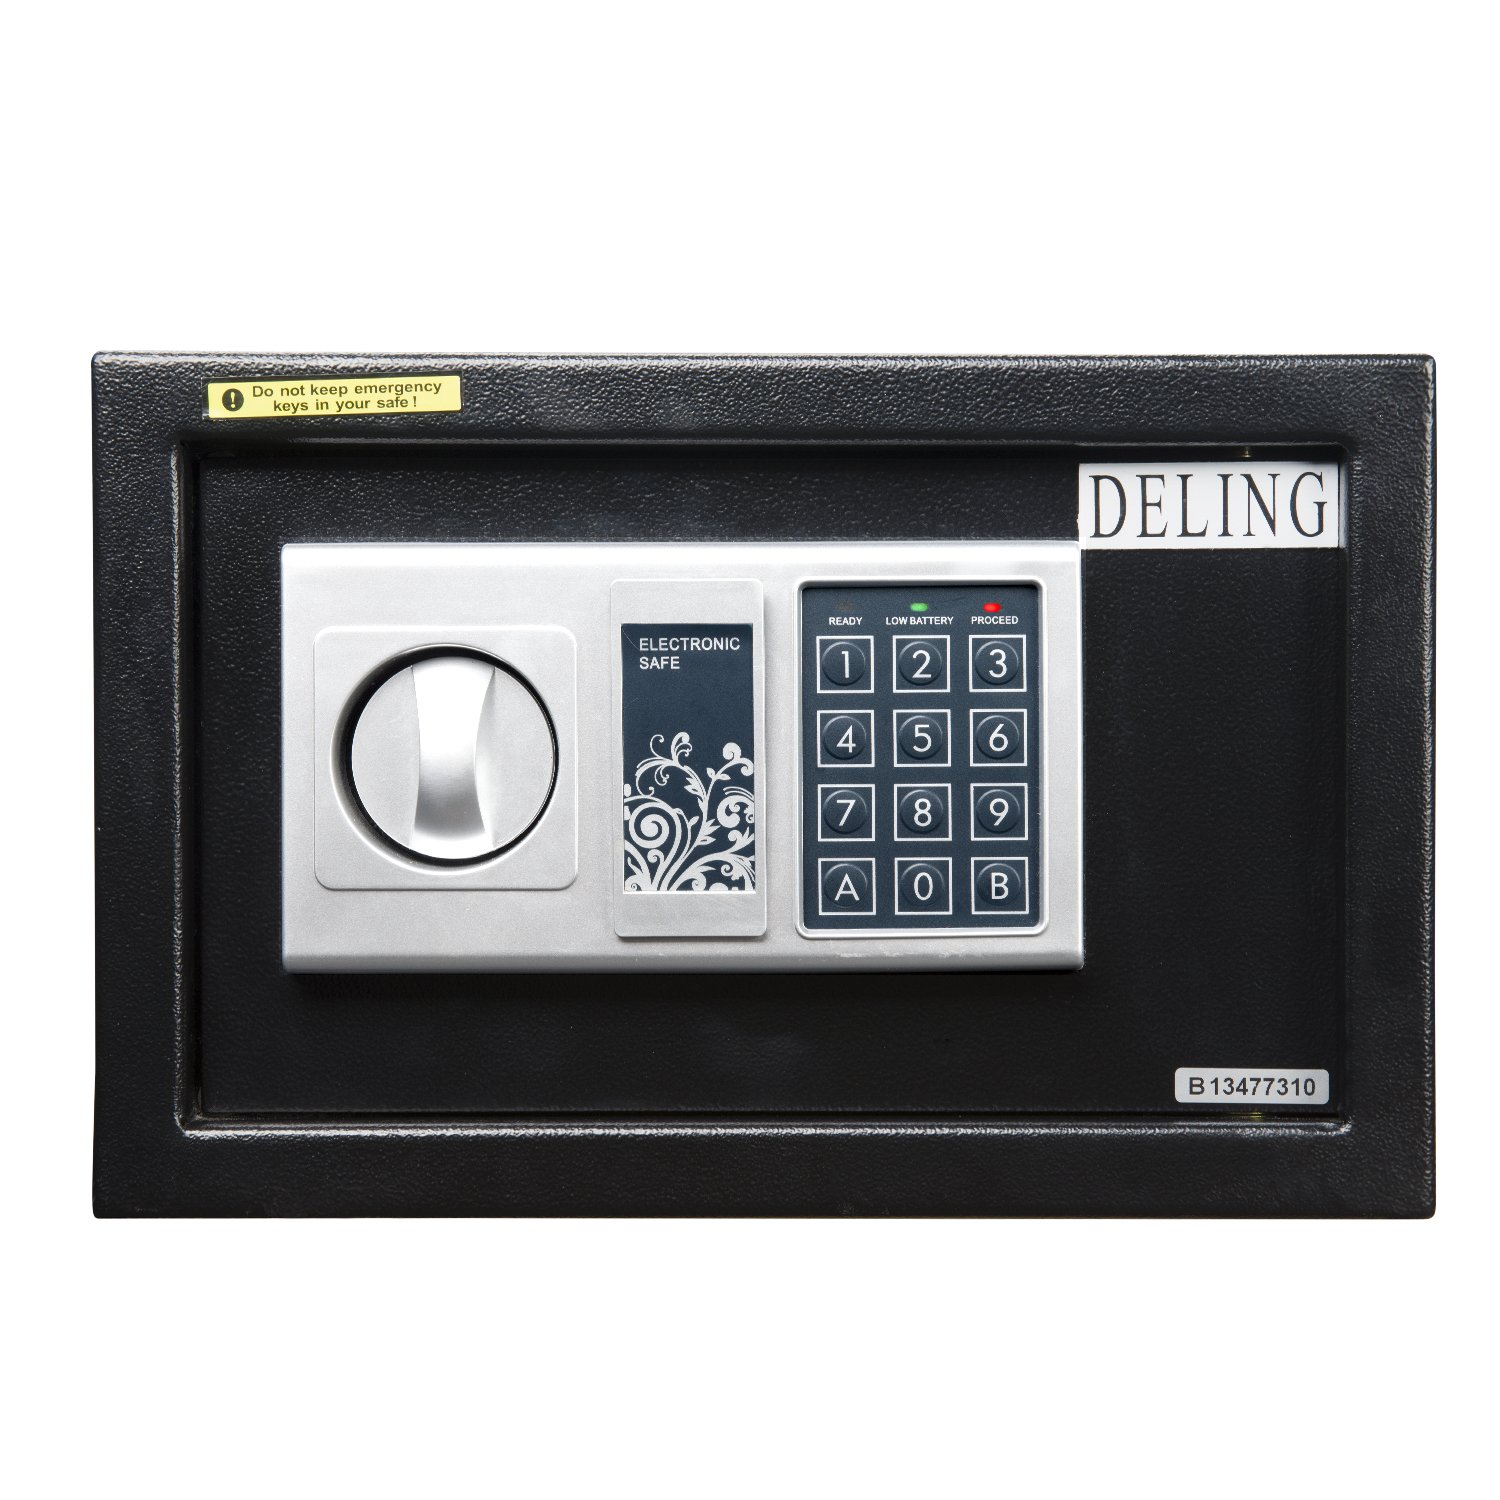 Ainfox Digital Electronic Security Safe Box, 0.37 Cubic Feet Mini Portable Digital Cabinet with Keypad Lock&Solid Steel Construction for Money Gun Jewelry (Black-20EN) by Ainfox (Image #1)